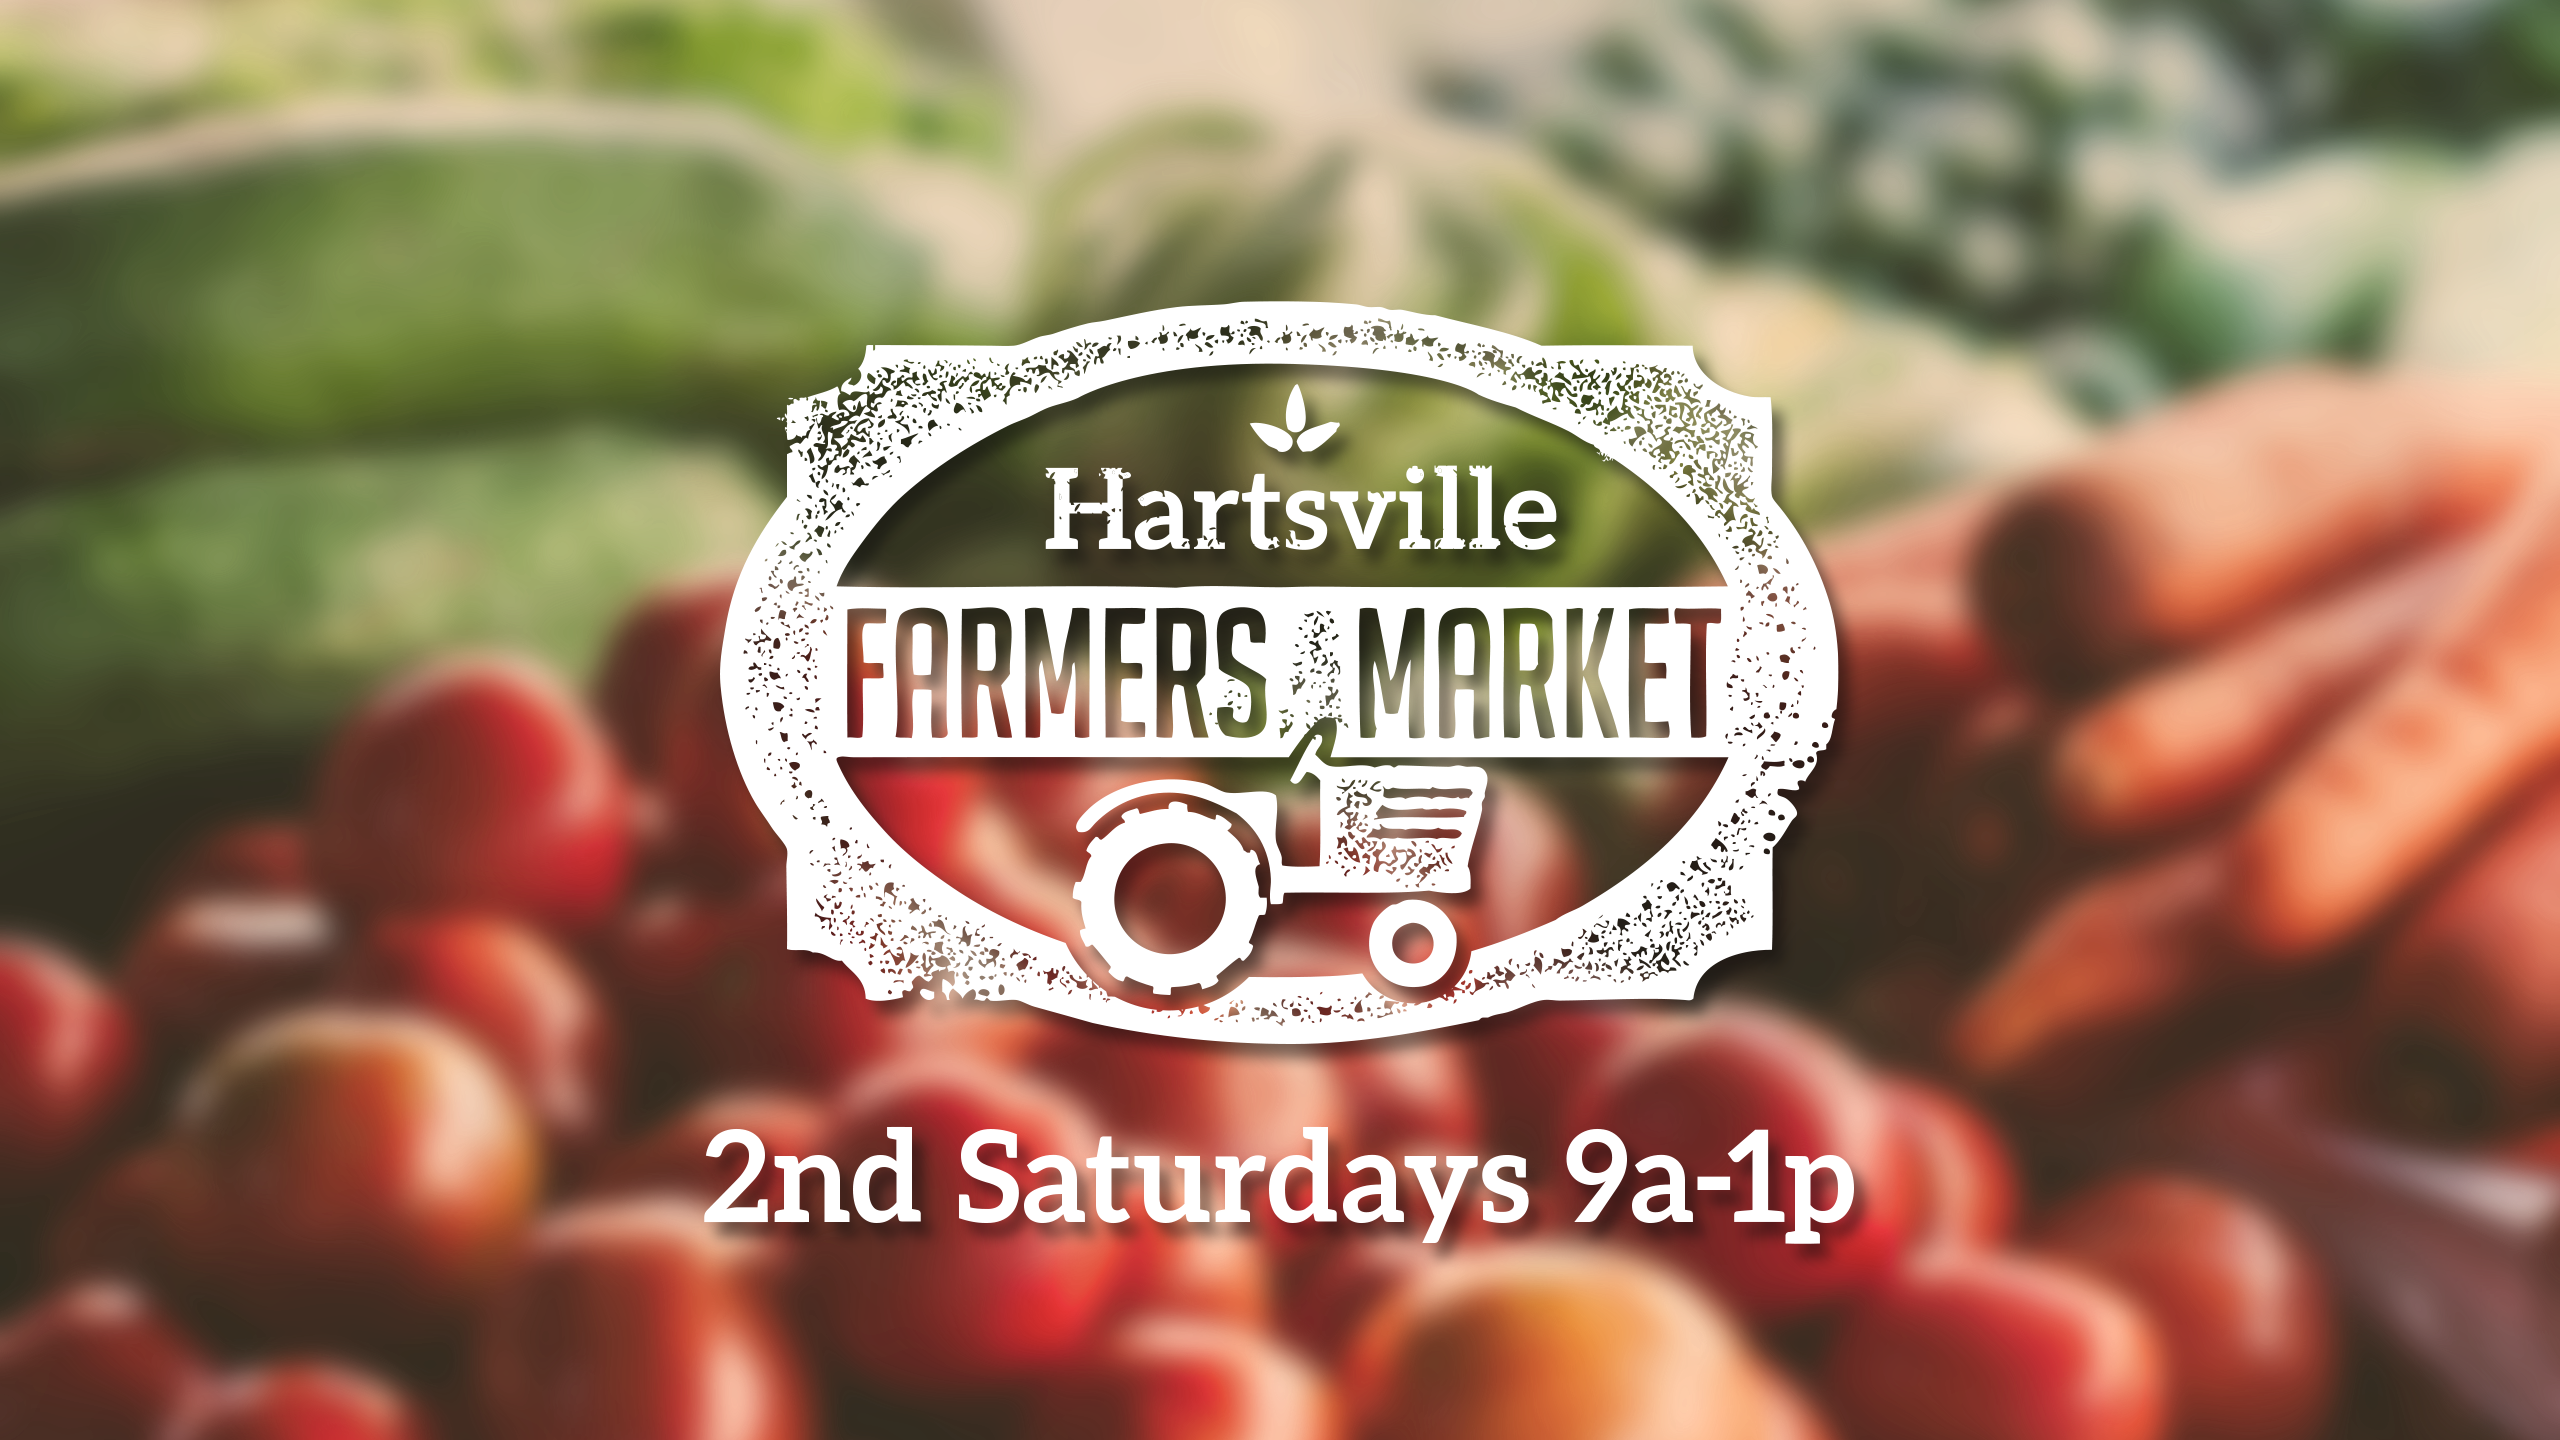 Hartsville Farmers Market 2nd Saturdays 9am-1pm.